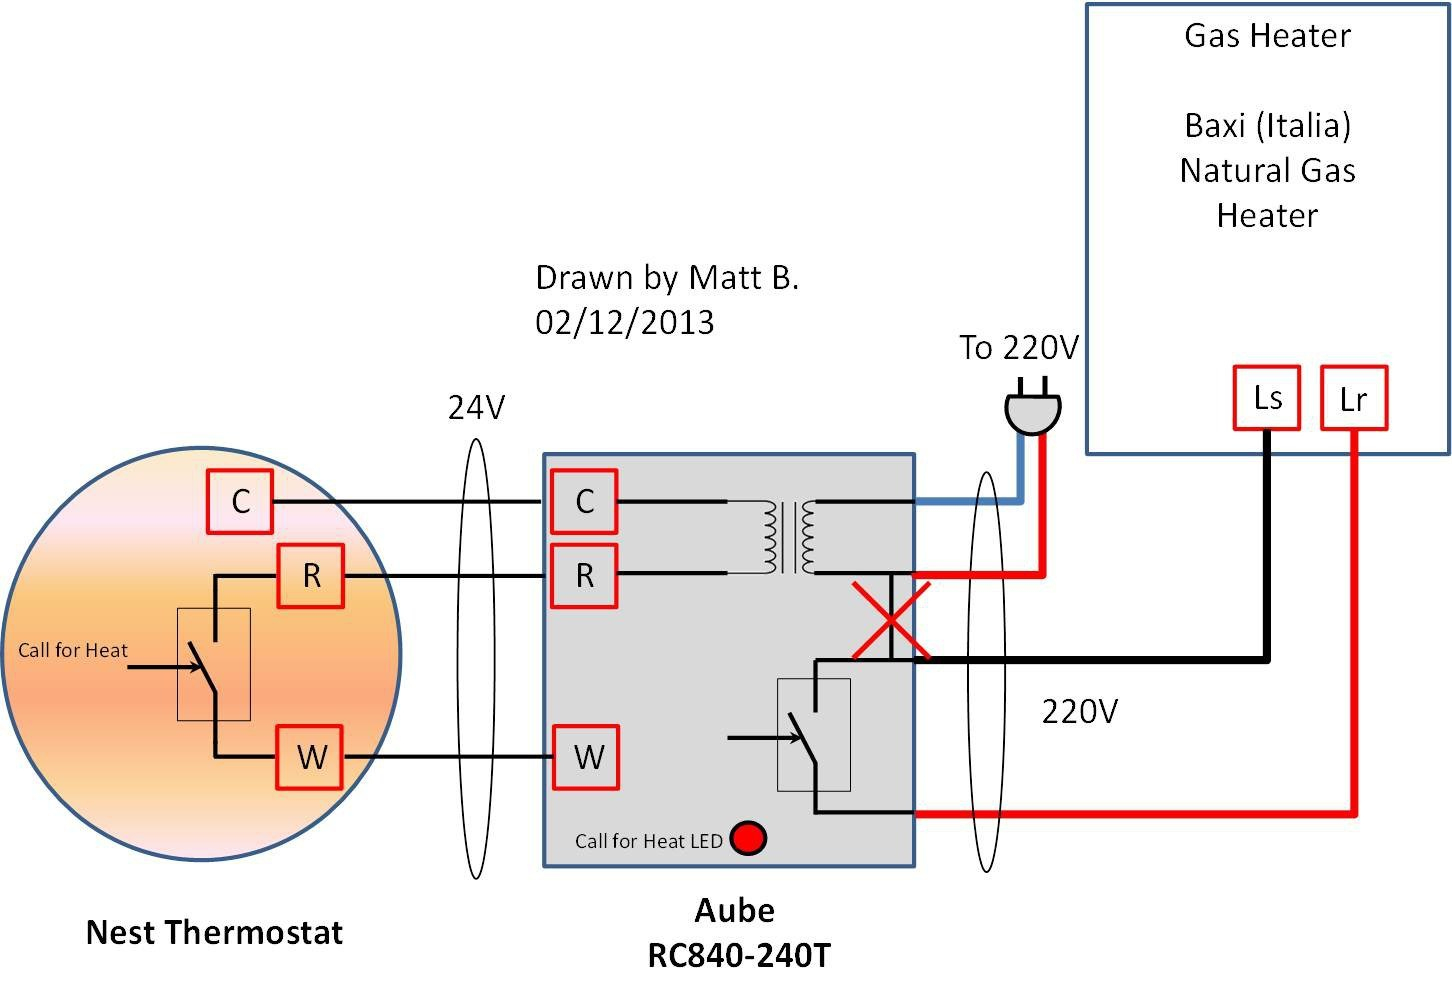 Wiring Diagram For Nest Thermostat Uk | Wiring Diagram - Nest Wiring Diagram Orange